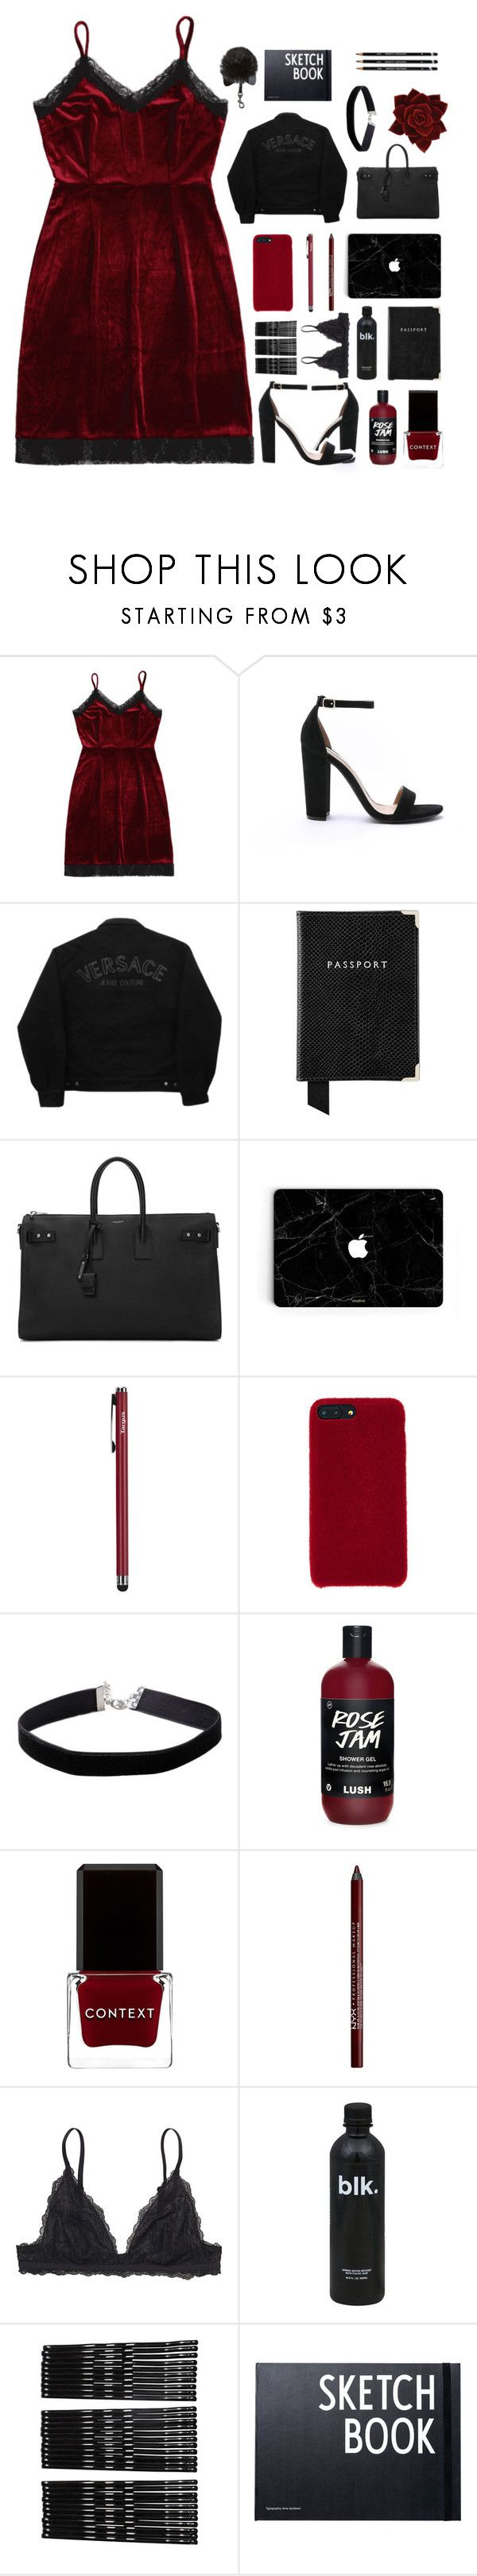 """""""мy вlood, ѕwəaт and тəarѕ"""" by gucci-af ❤ liked on Polyvore featuring Steve Madden, Versace Jeans Couture, Aspinal of London, Yves Saint Laurent, Targus, Miss Selfridge, Context, Charlotte Russe, Monki and Design Letters"""